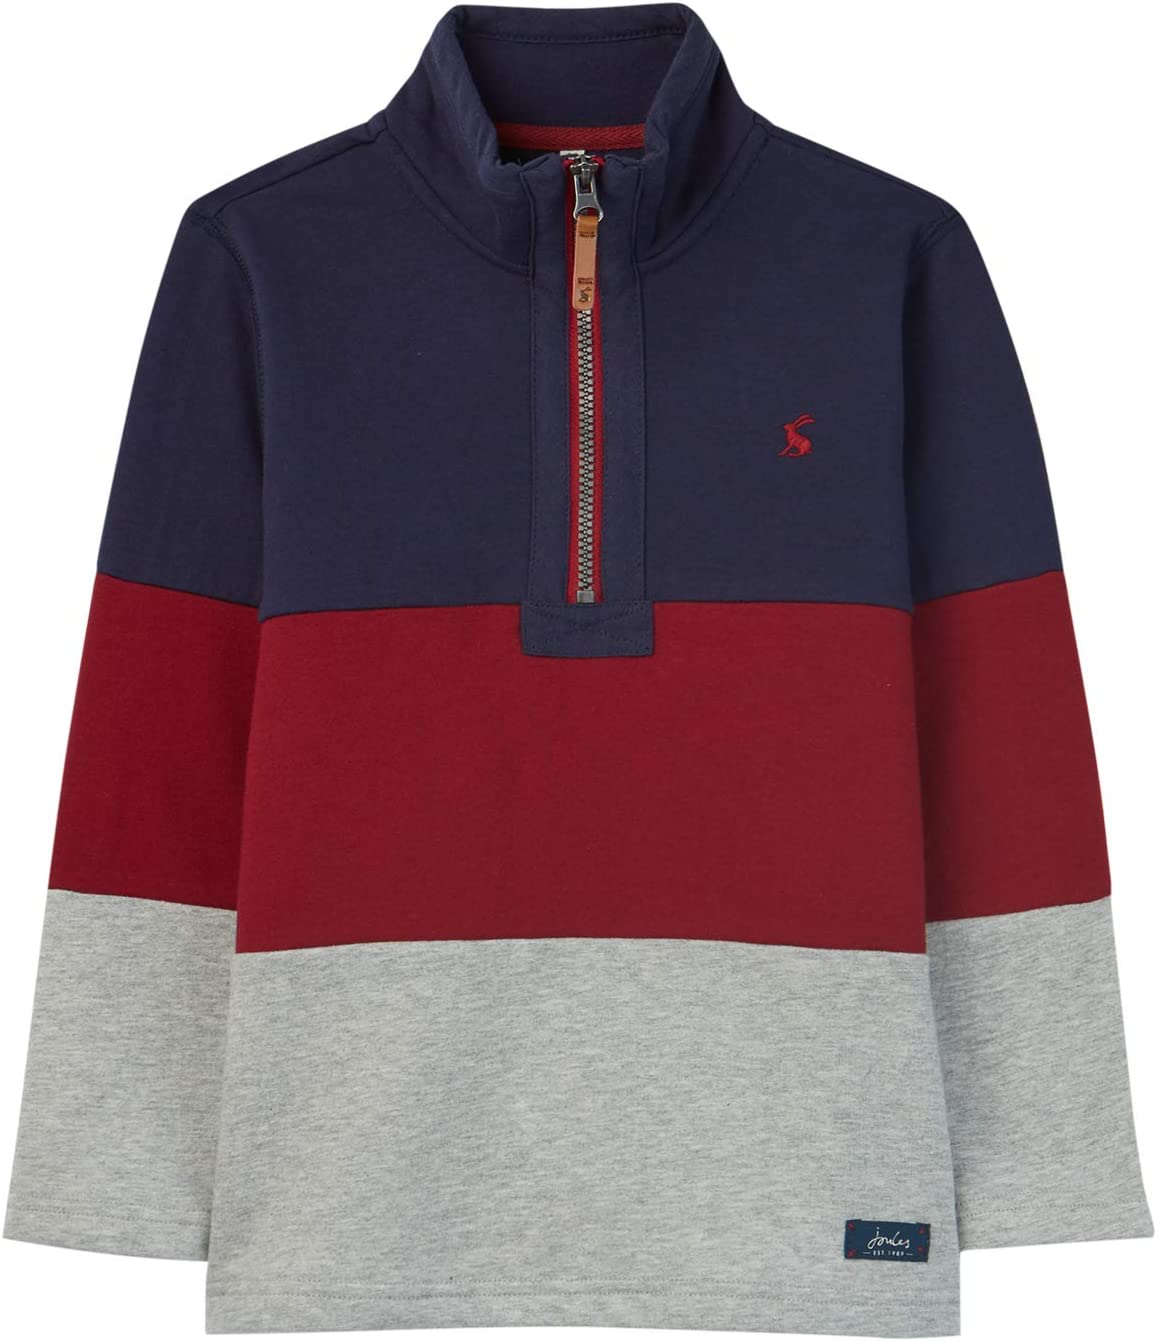 5 Joules Junior Dale Boys Cut And Sew Overhead Sweatshirt Navy Red Grey